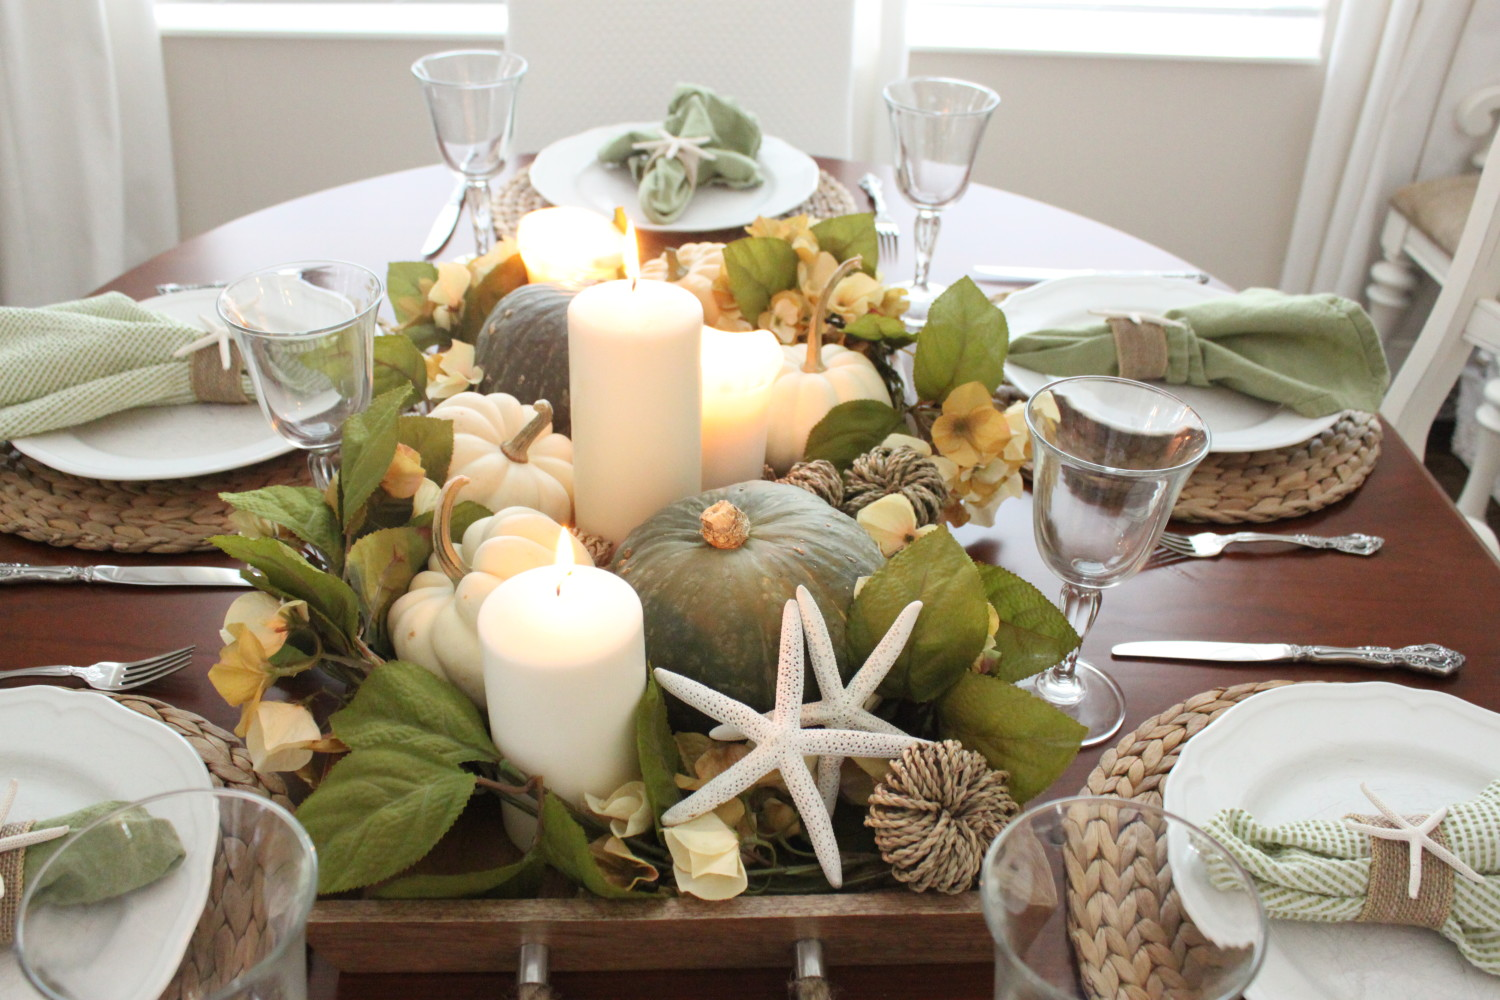 Then I Replaced The Centerpiece With This Wooden Tray Full Of Pillar Candles Pumpkins Greenery And Dried Hydrangeas